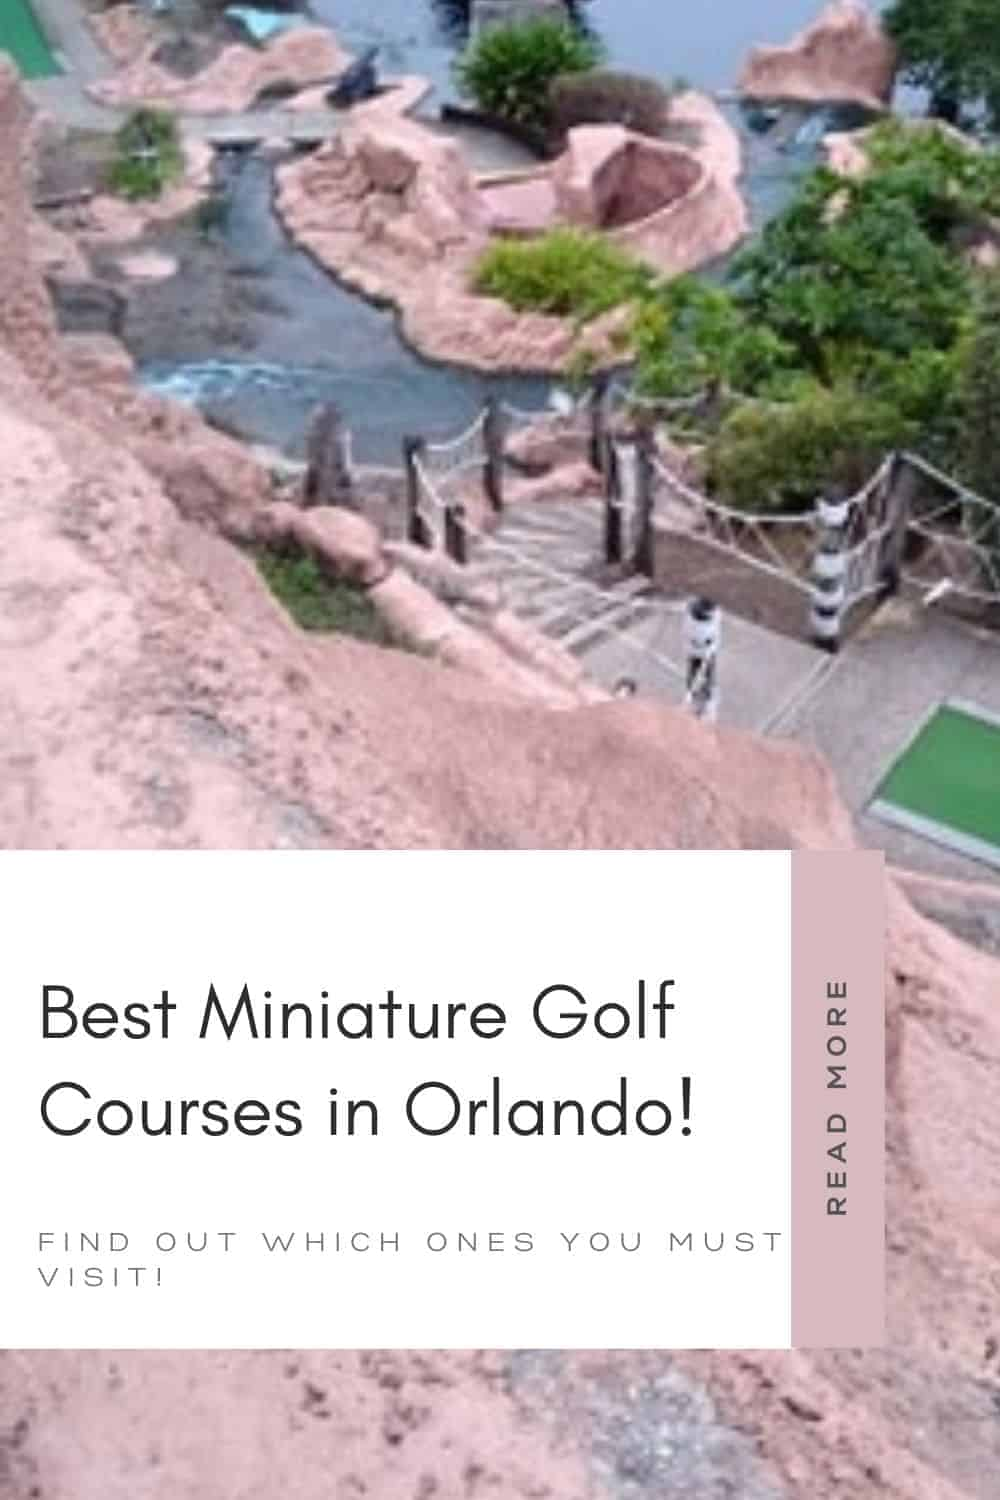 Best Miniature Golf Courses in Orlando - Visit Orlando and enjoy a mini golf adventure with the family. Find out which courses are the best and how to save on mini golf.